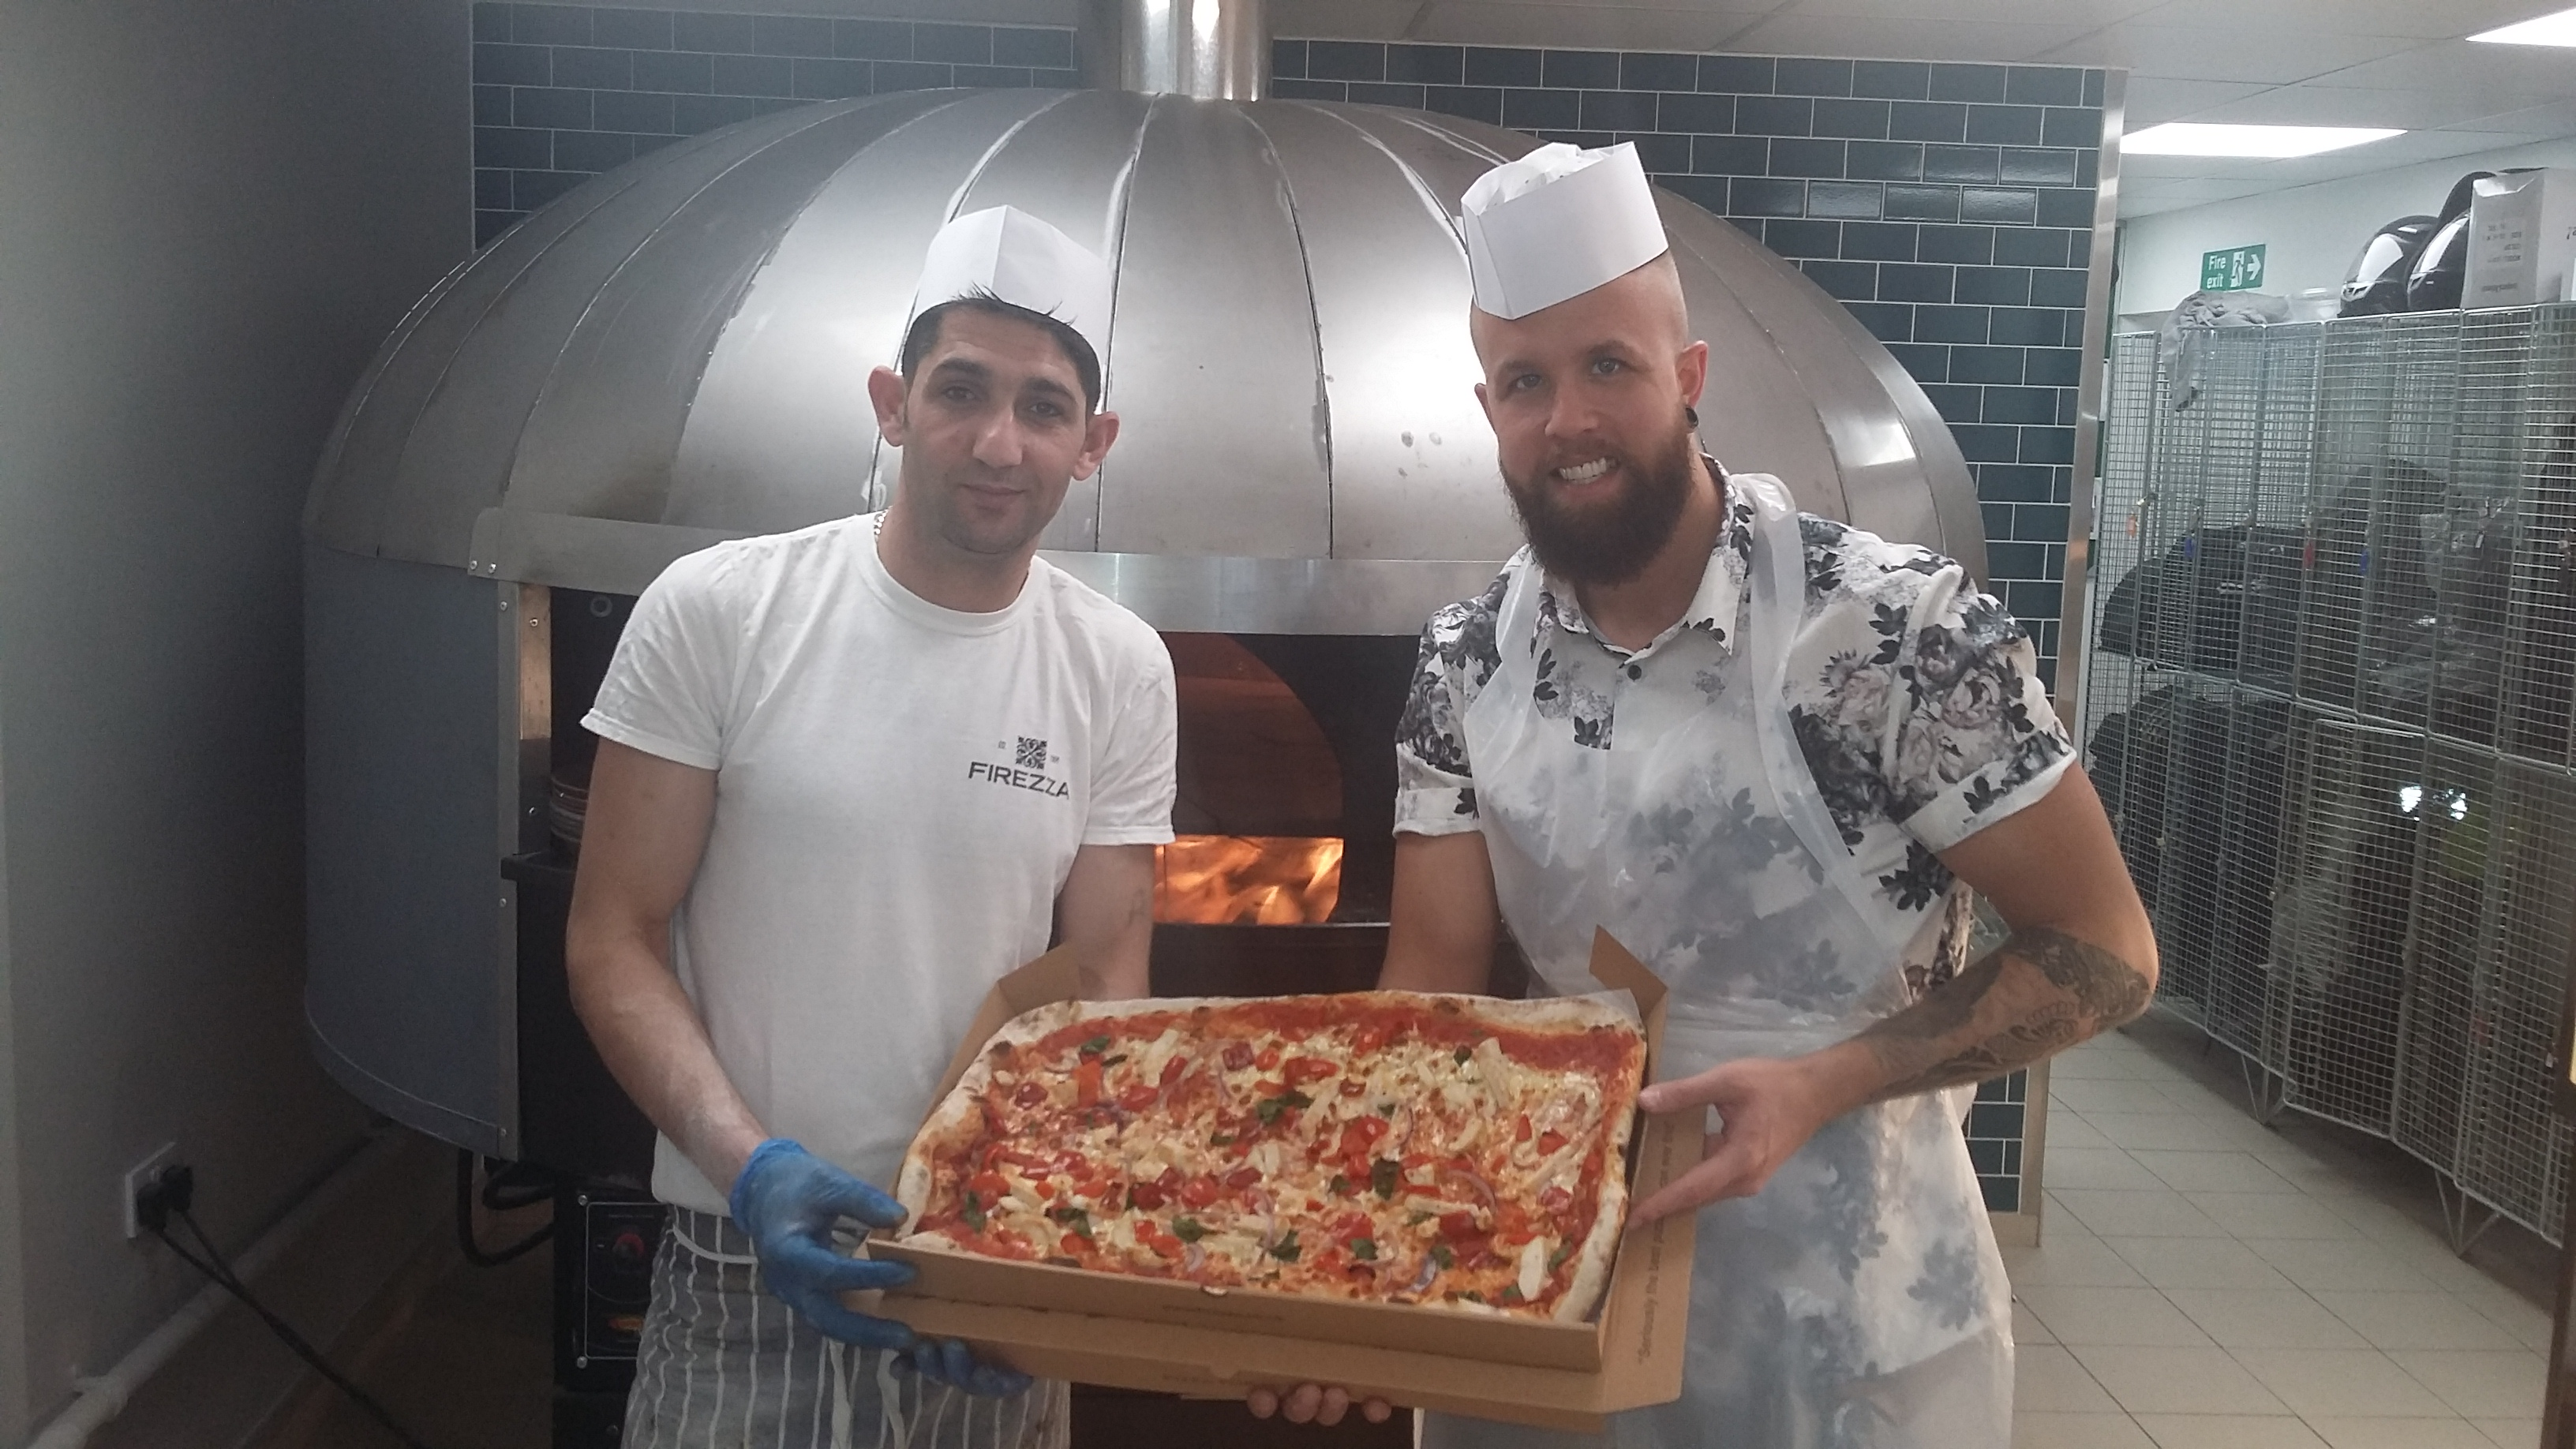 Editor Jon Learns How To Make Proper Pizza At Firezza In